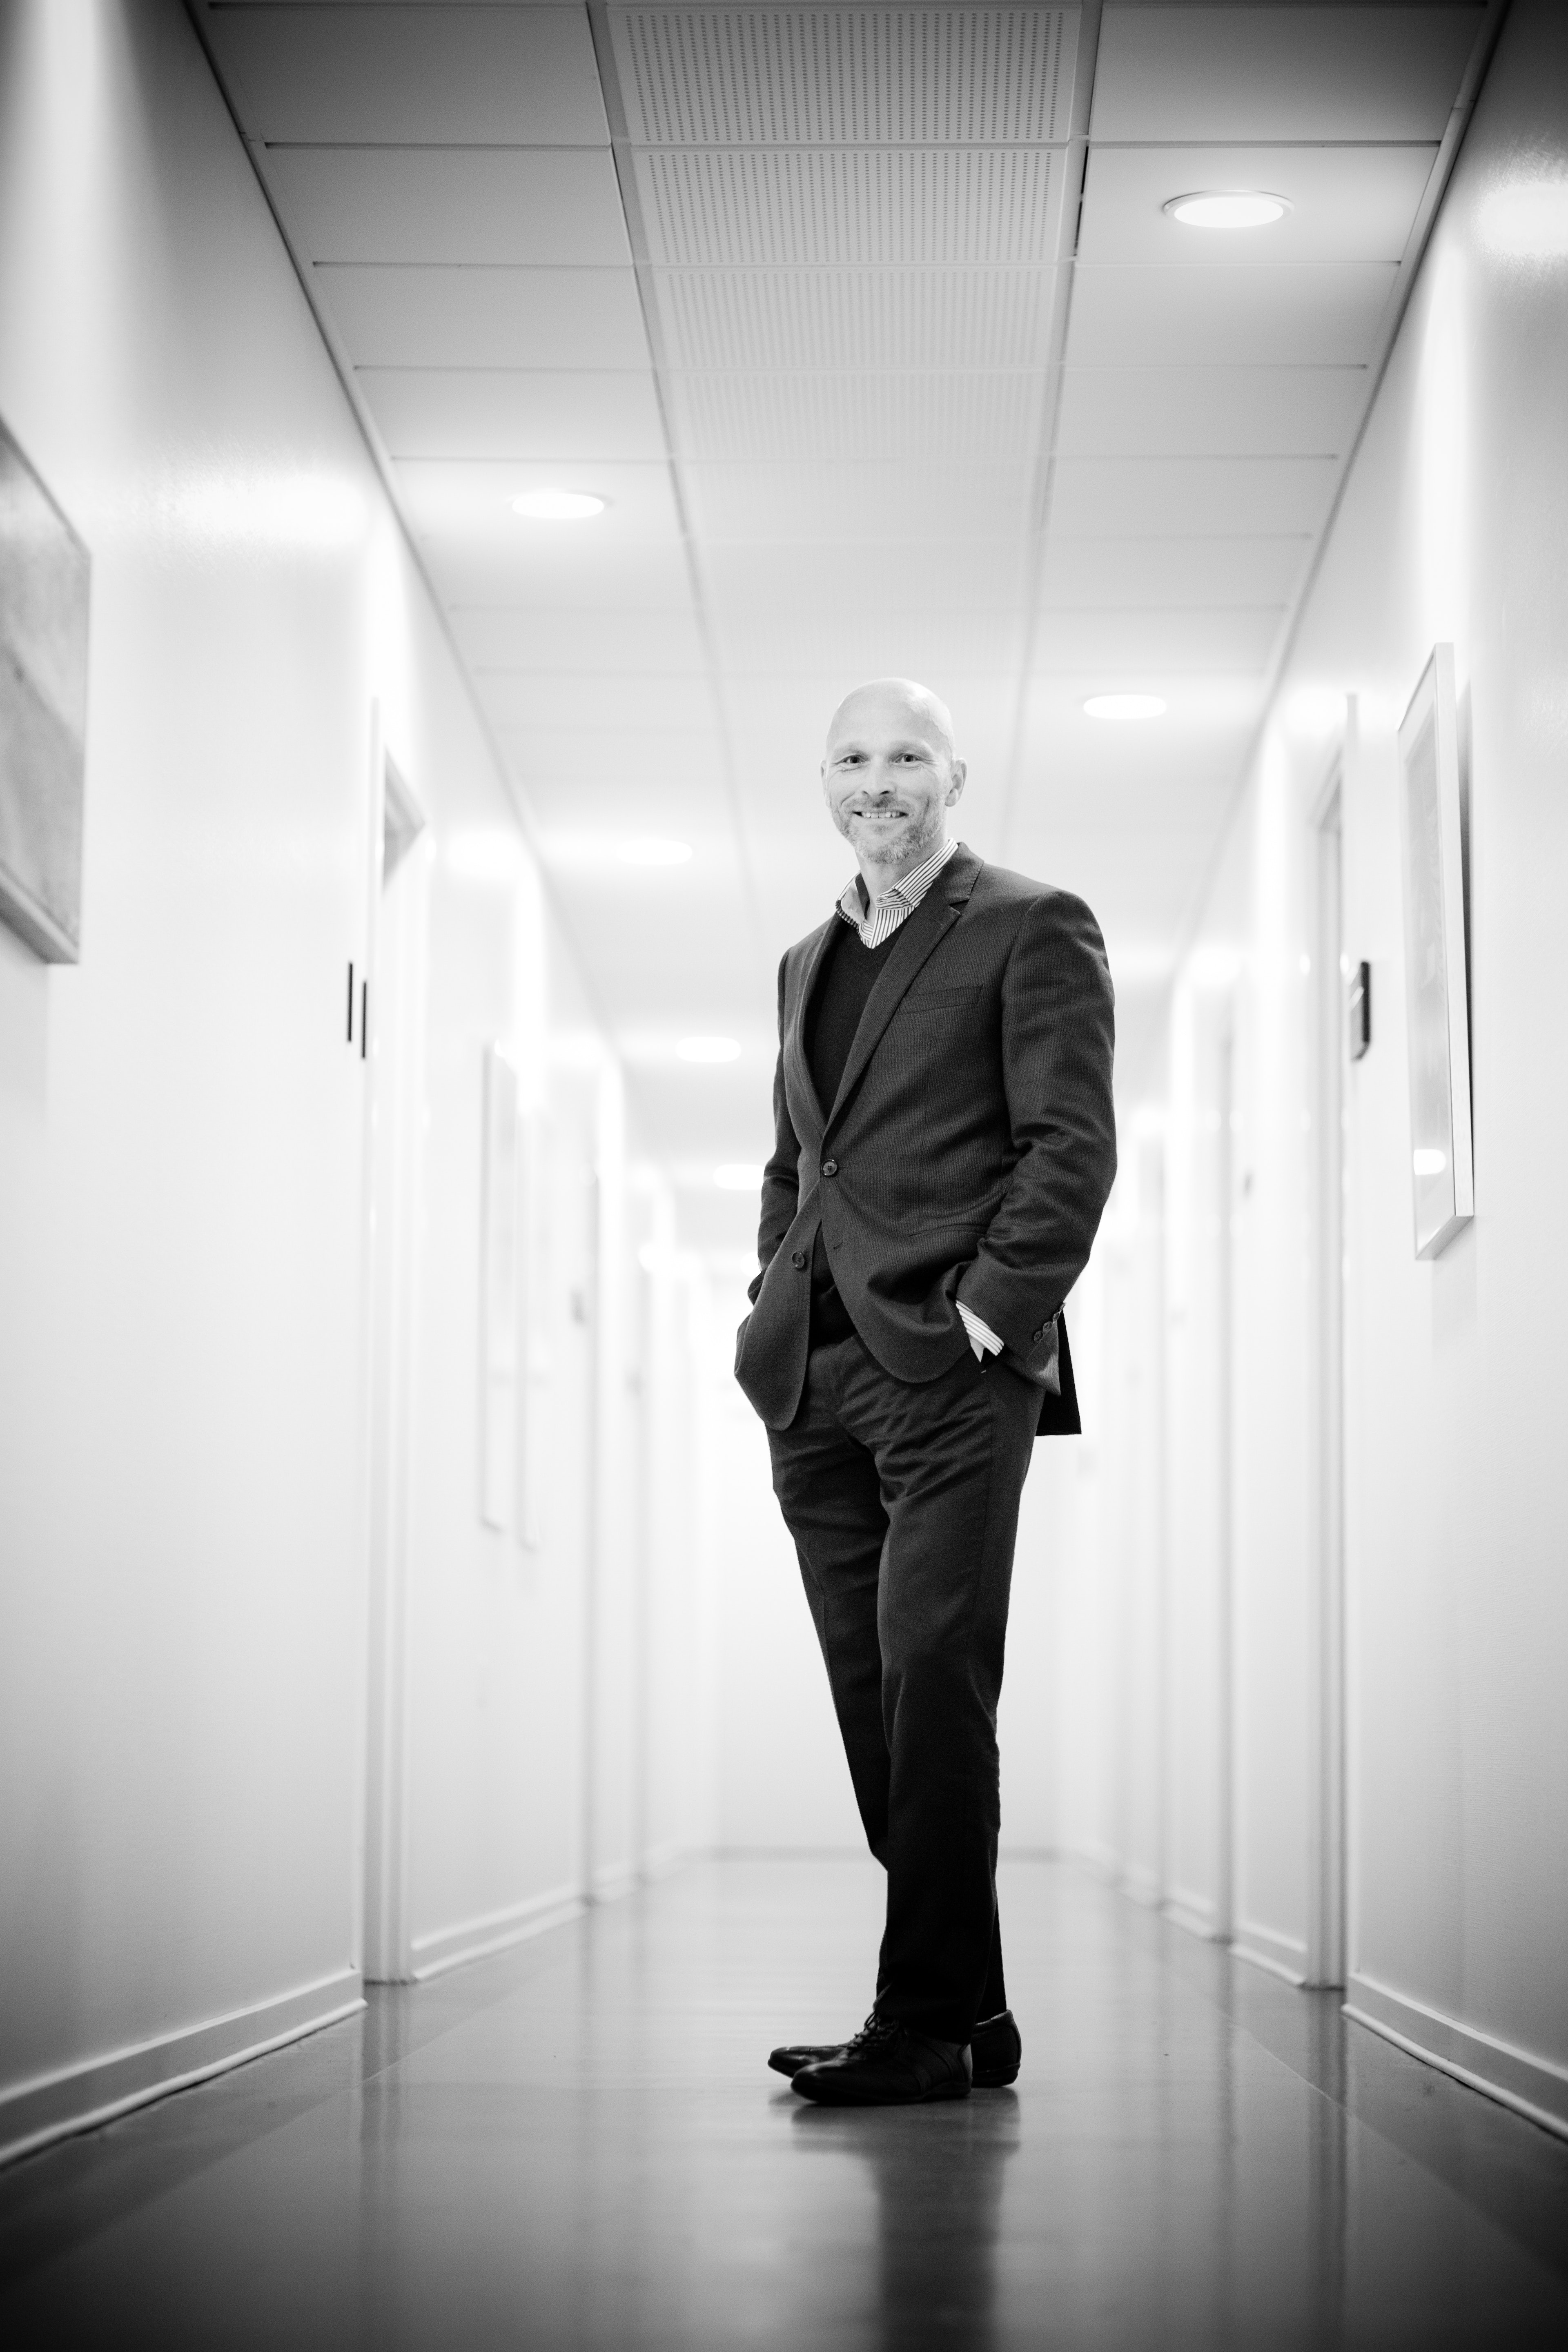 Full Length Portrait of Man Standing in Corridor, Accountant, Light, Suit, Pose, HQ Photo